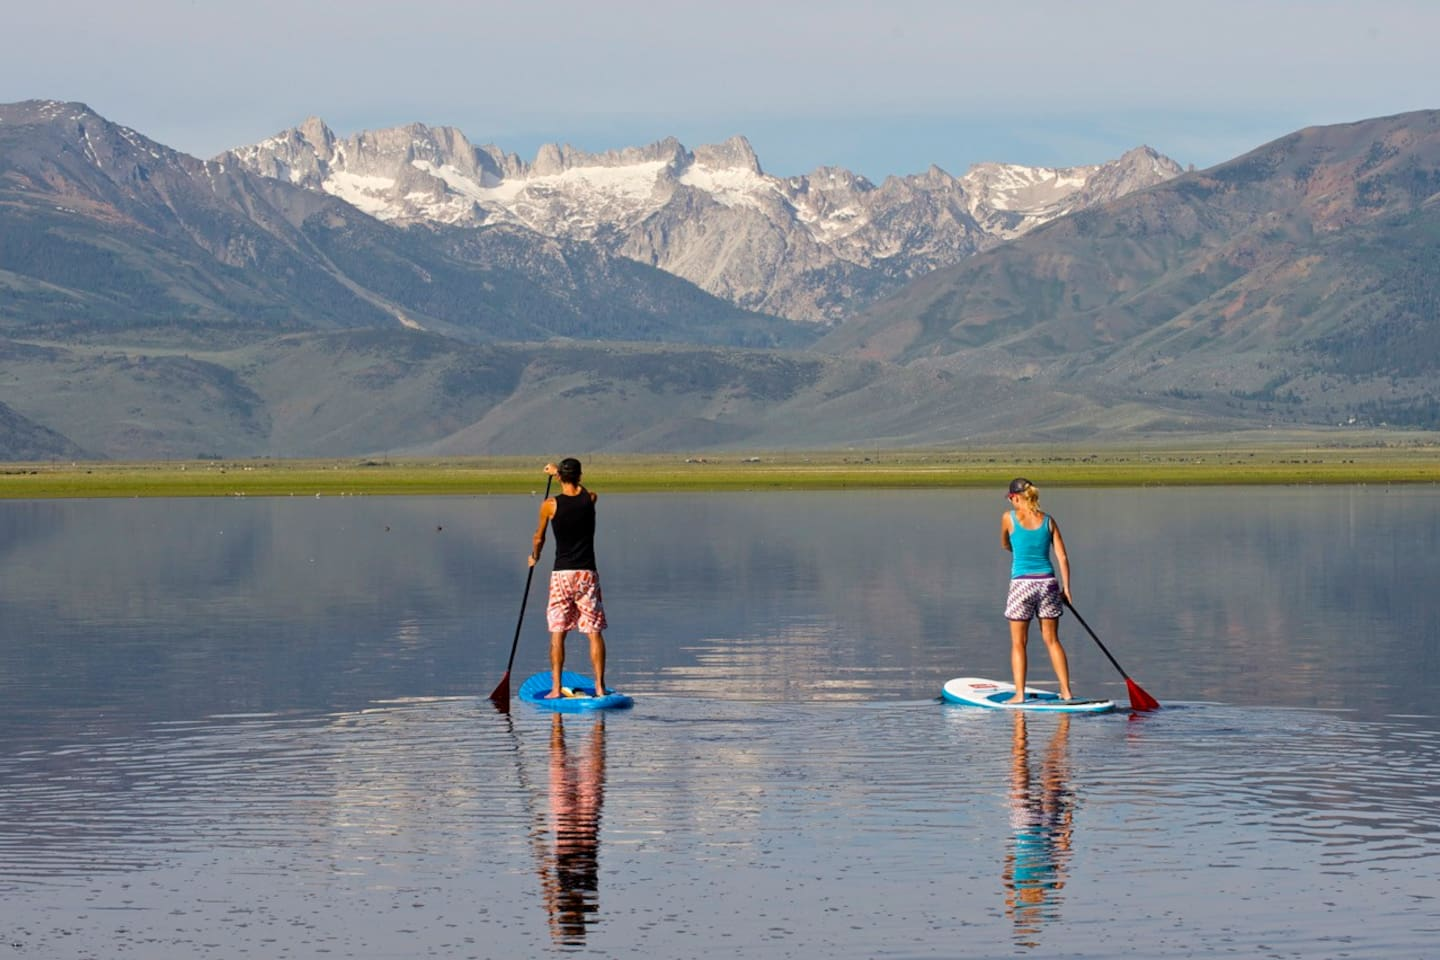 We have kayaks, paddle boat and stand up paddle boards you're welcome to take on the reservoir